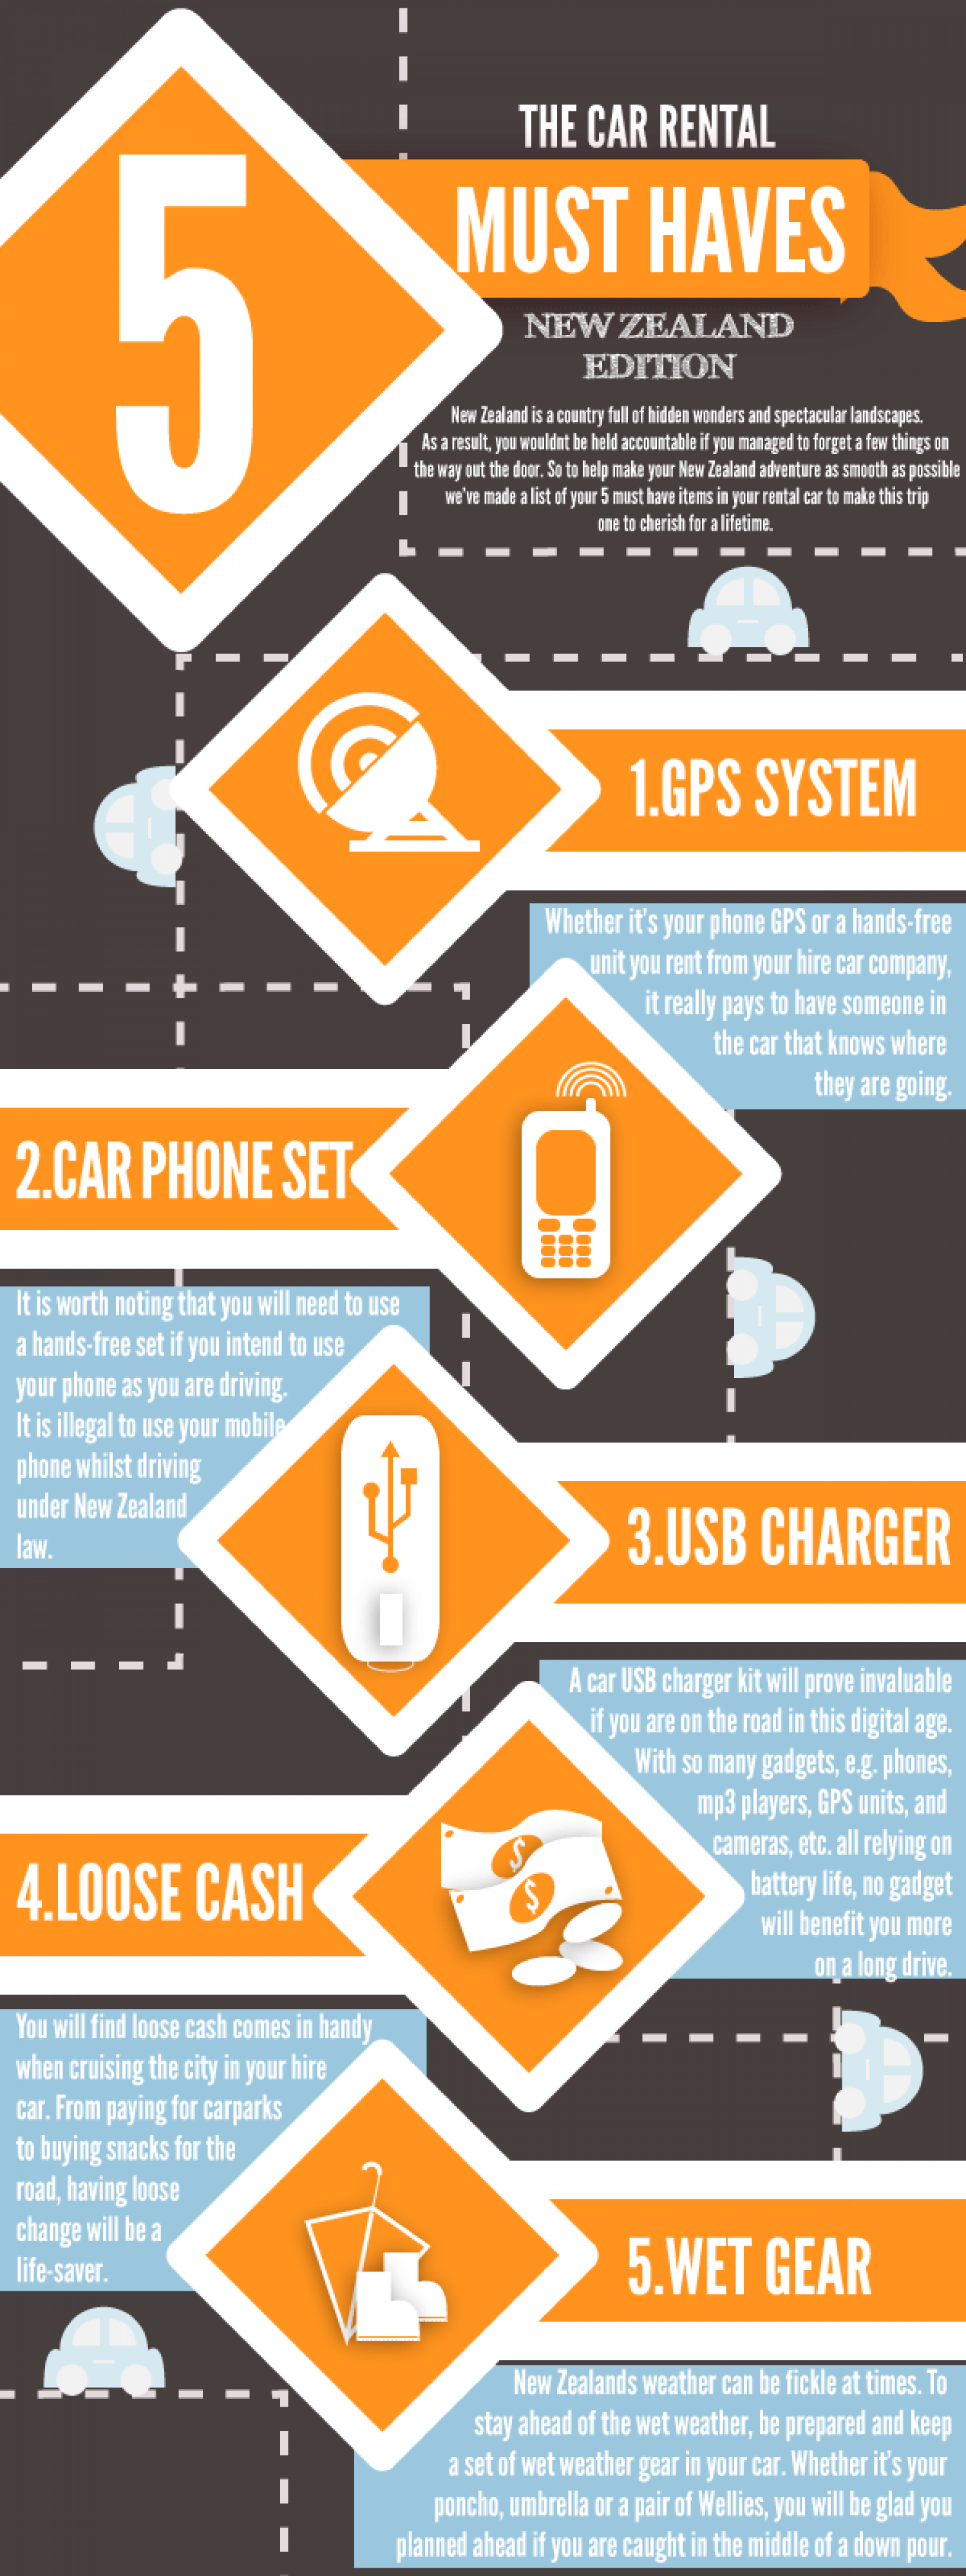 Car Rental Must Haves Infographic